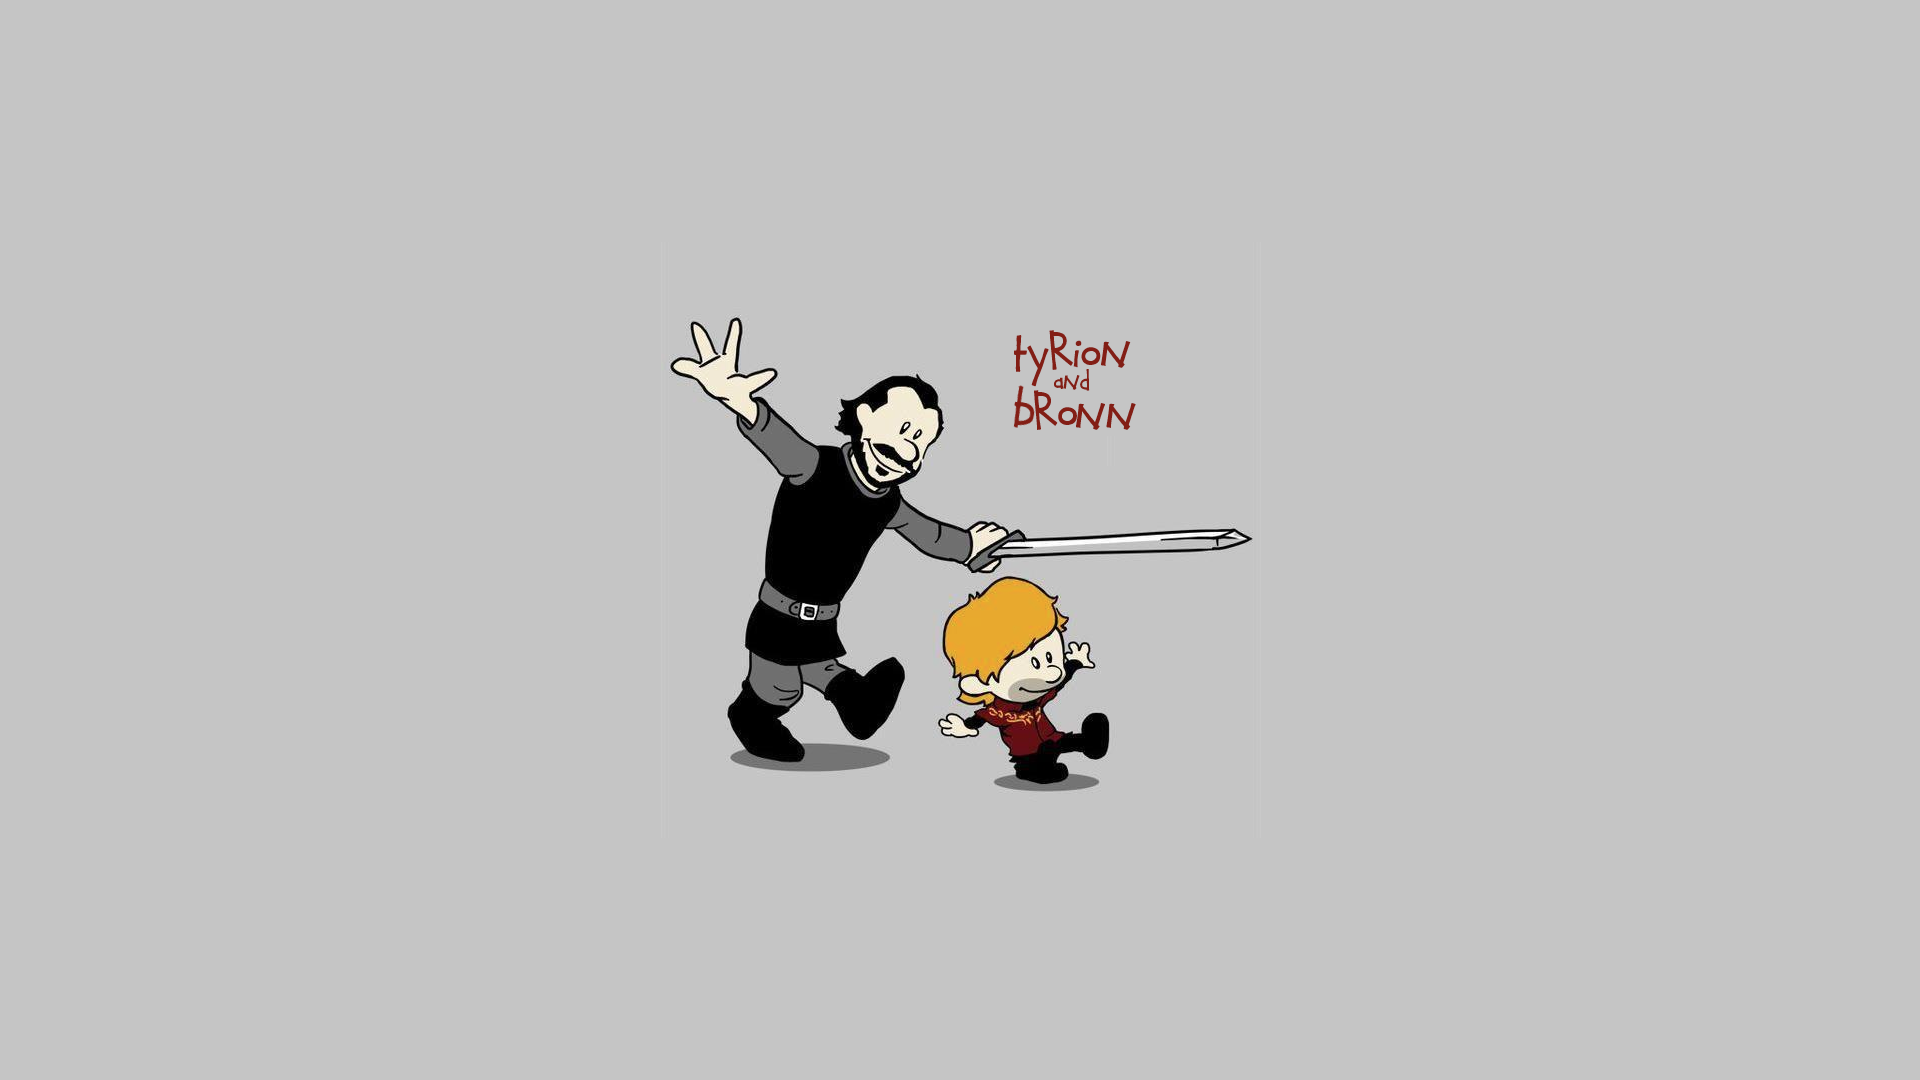 Super Mario Game Of Thrones Crossover Iron Throne: Calvin And Hobbes Comics Game Of Thrones Fantasy Wallpaper